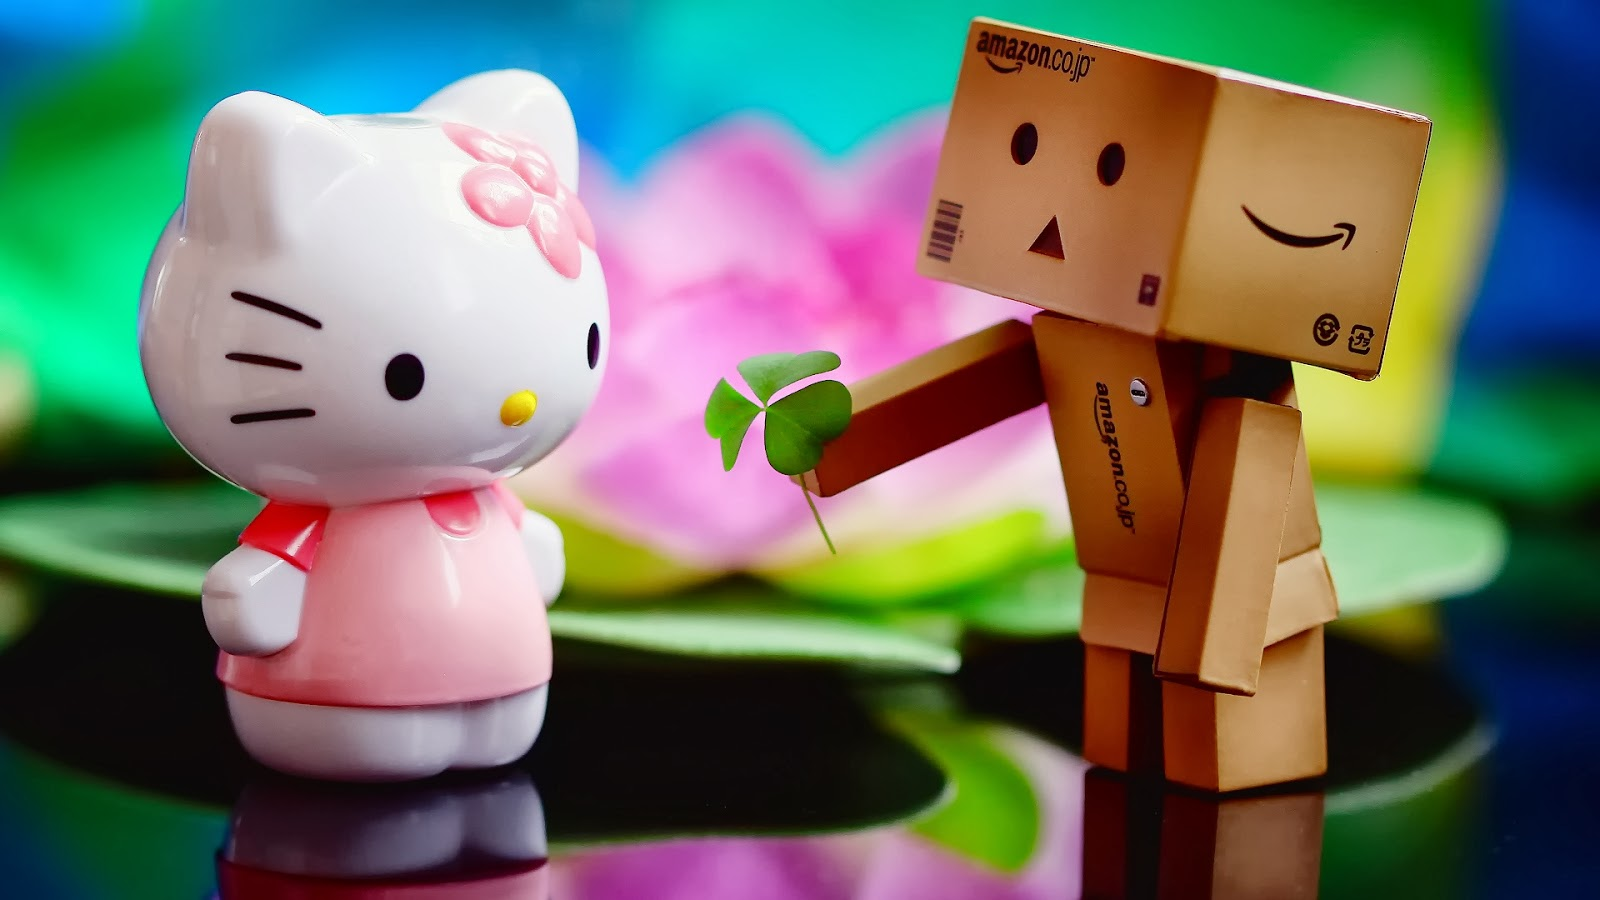 cute-boy-robot-proposing-toy-girl-image.jpg